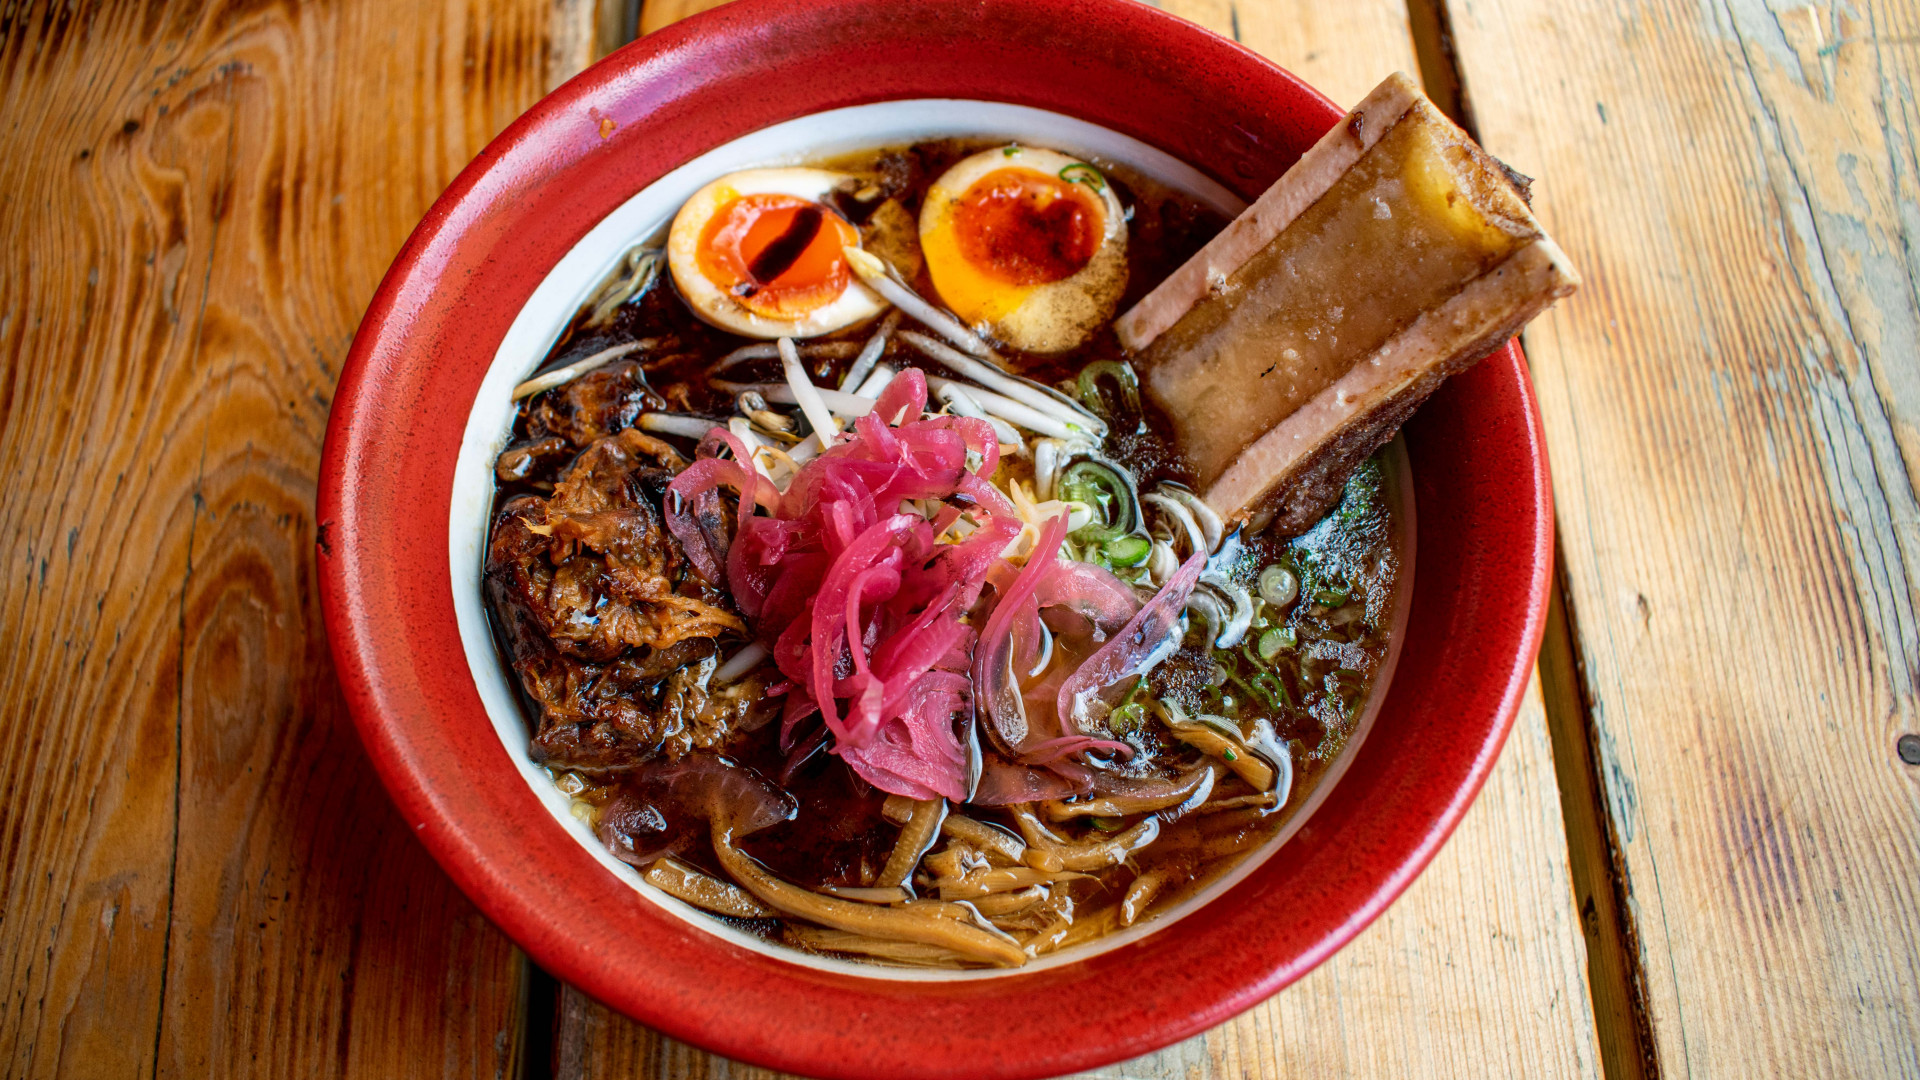 This is a photo of the Bone Daddies and Black Bear collaboration, which includes Bone Daddies beef bone broth, Black Bear beer braised brisket, bone marrow, pink pickled onions, bamboo shoots, beansprouts and a soy Clarence Court egg.